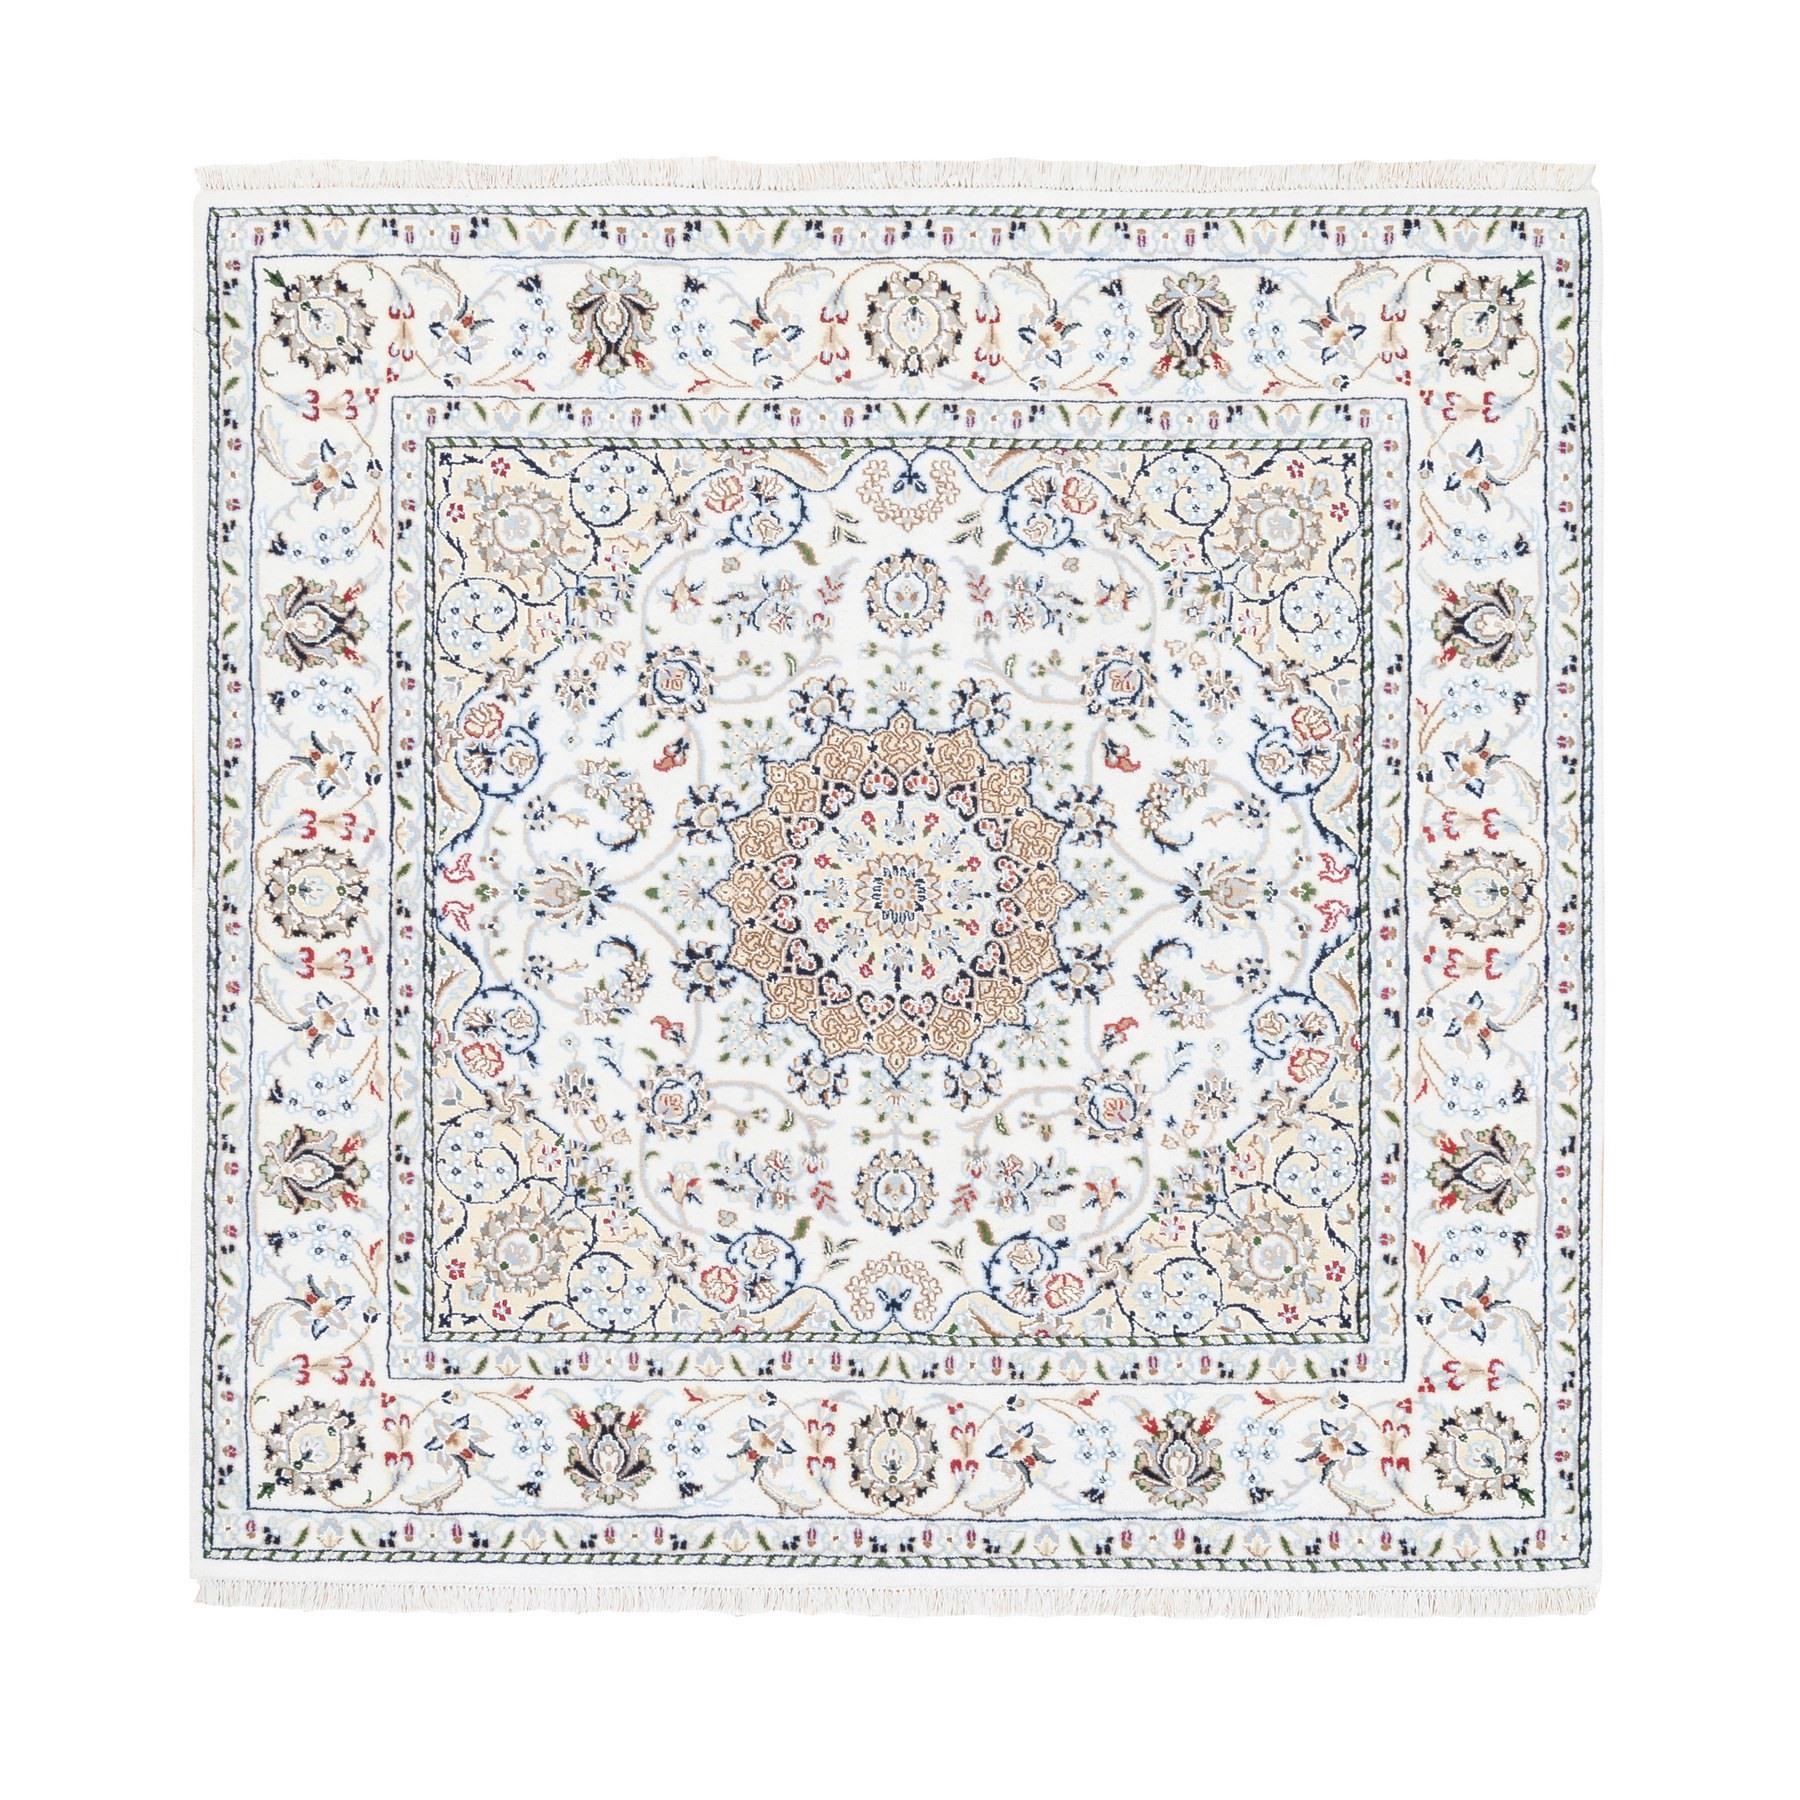 Pirniakan Collection Hand Knotted Ivory Rug No: 1125504